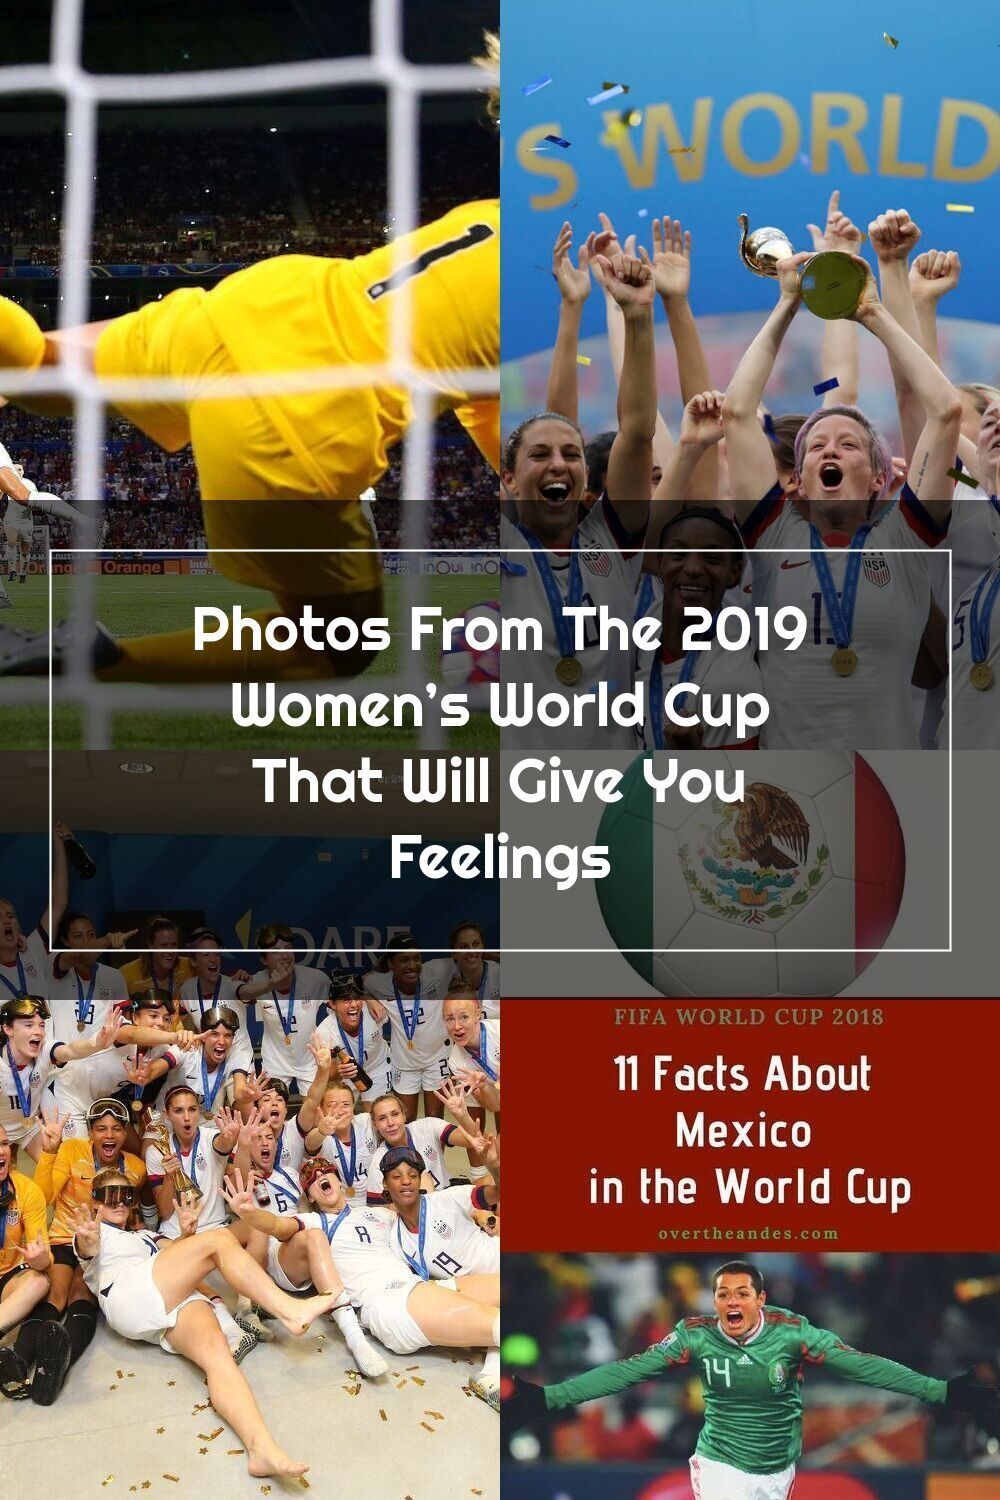 The Us S Alyssa Naeher S Penalty Kick Save That Clinched The Win Over England 2 1 In The Semifinals Photos From The In 2020 World Cup Penalty Kick Women S World Cup